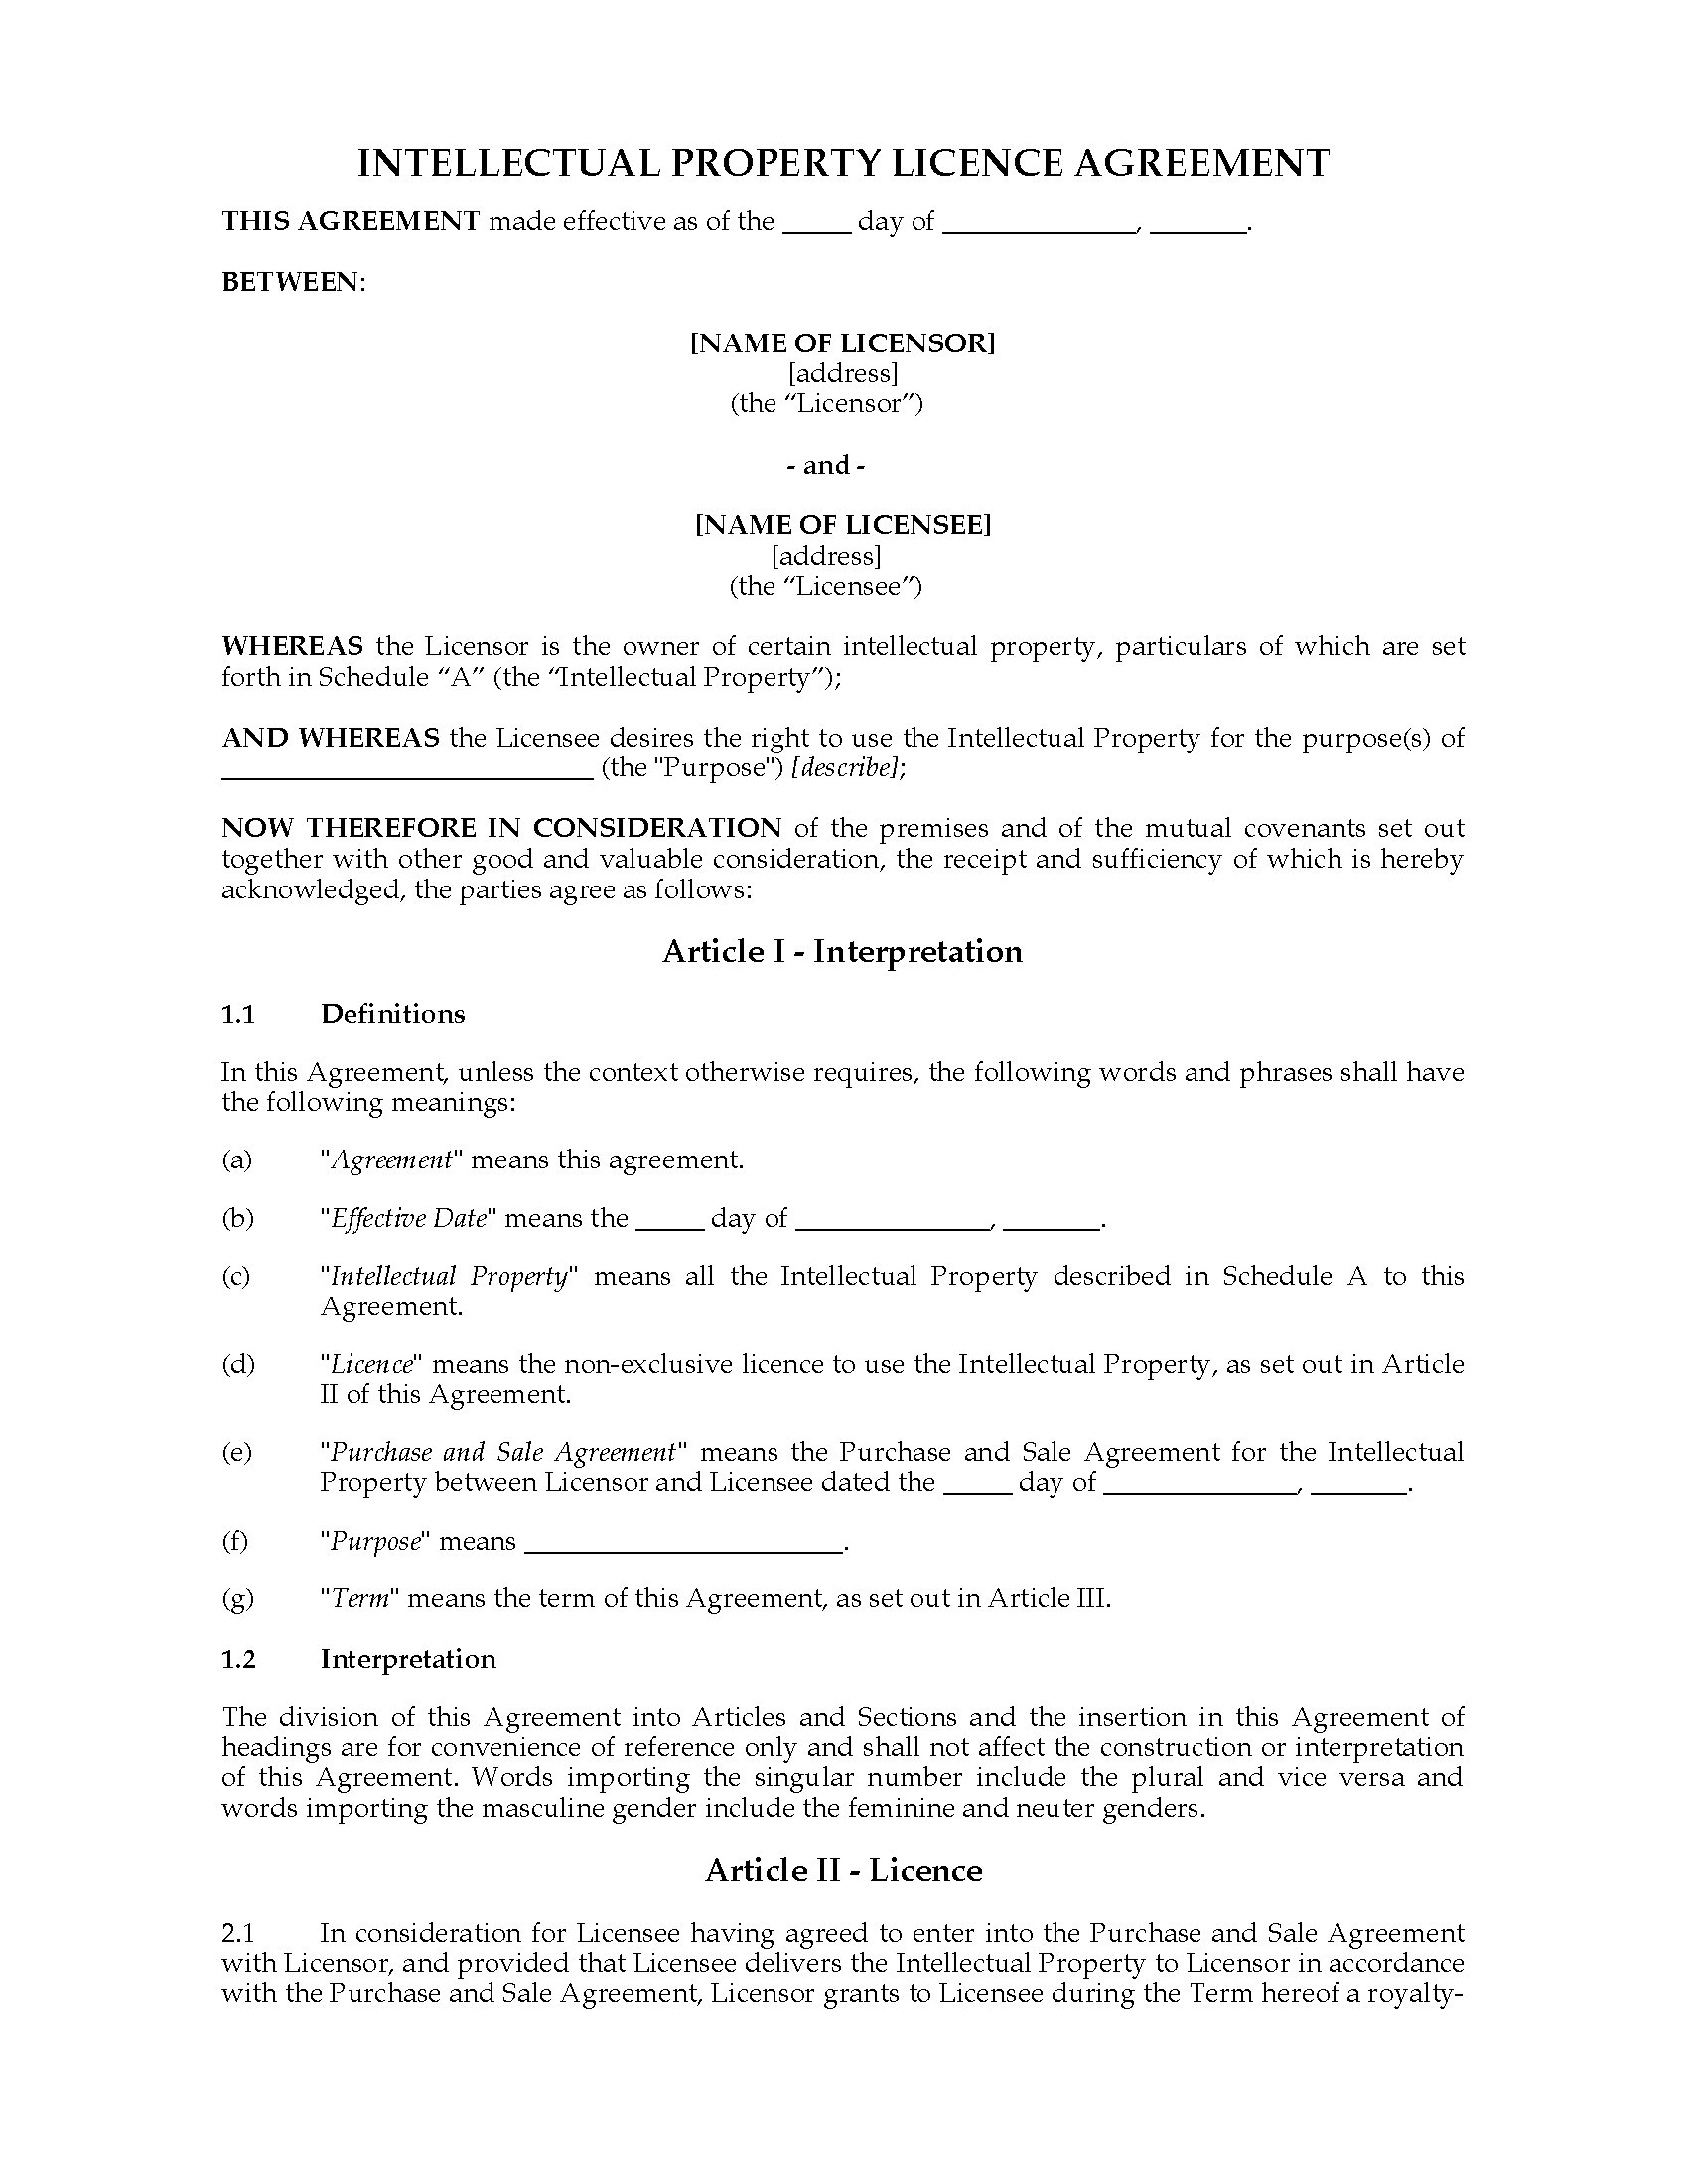 New zealand intellectual property licence agreement for Intellectual property licence agreement template